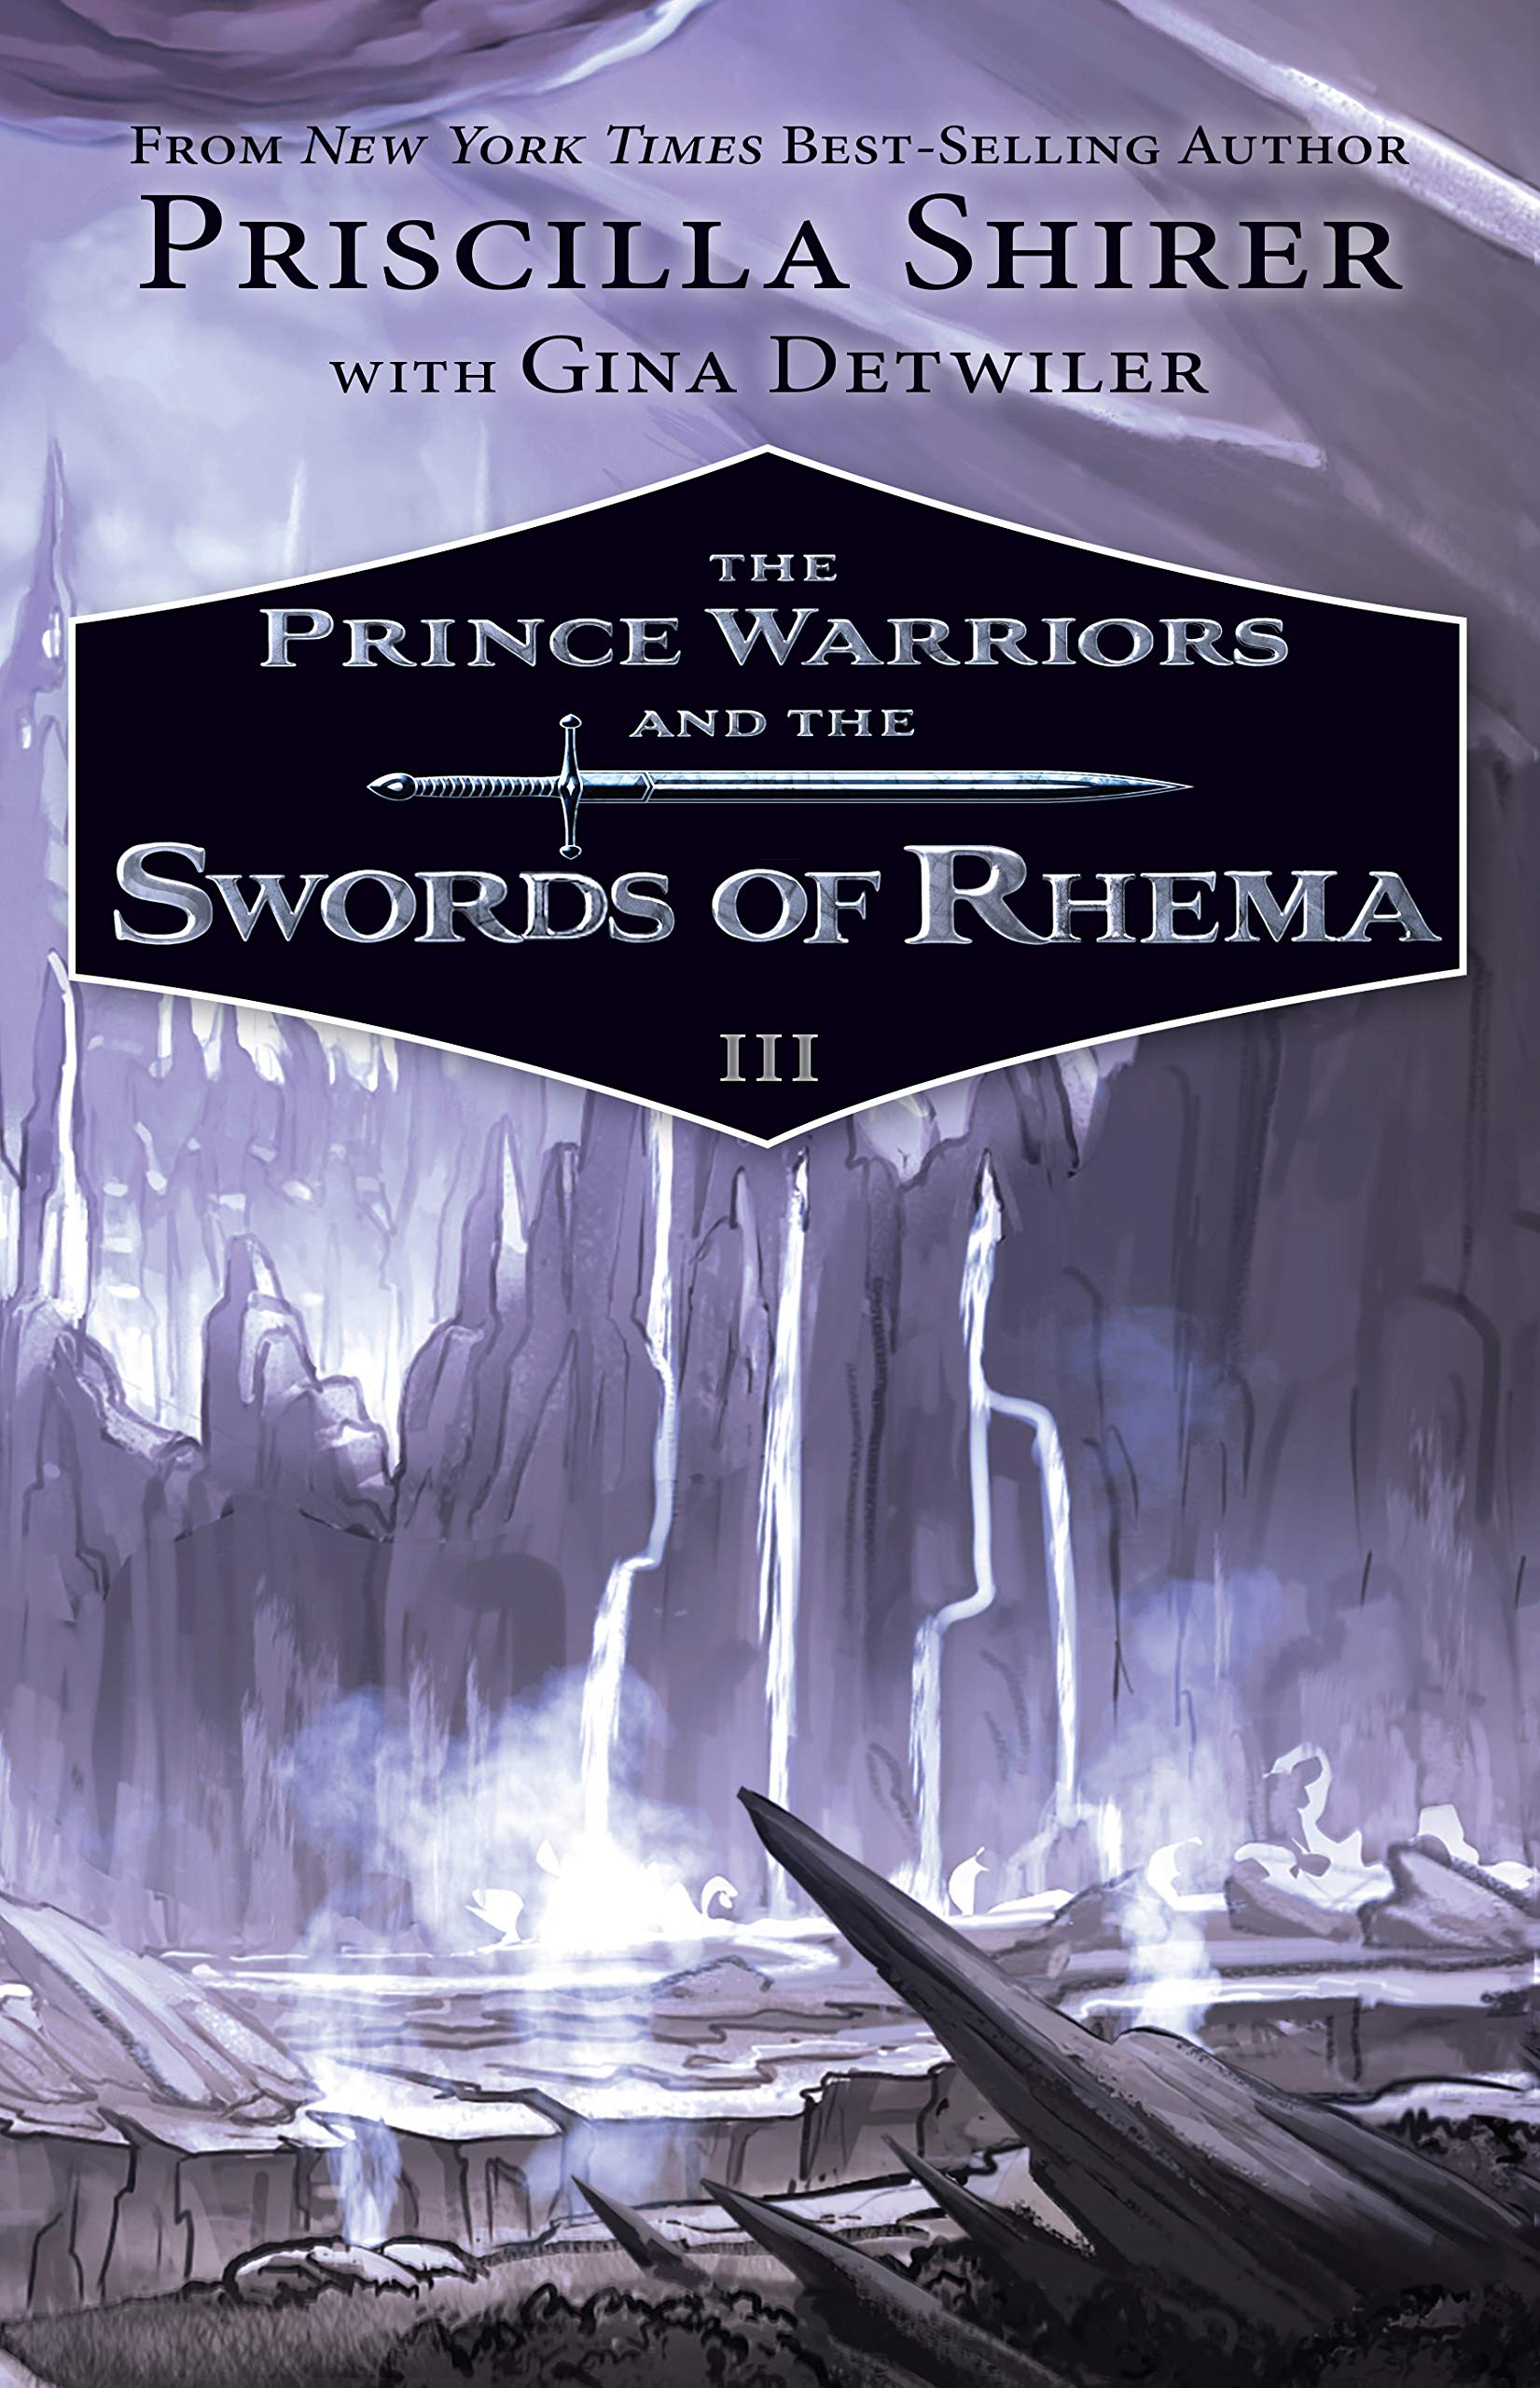 Download The Prince Warriors and the Swords of Rhema PDF Text fb2 book